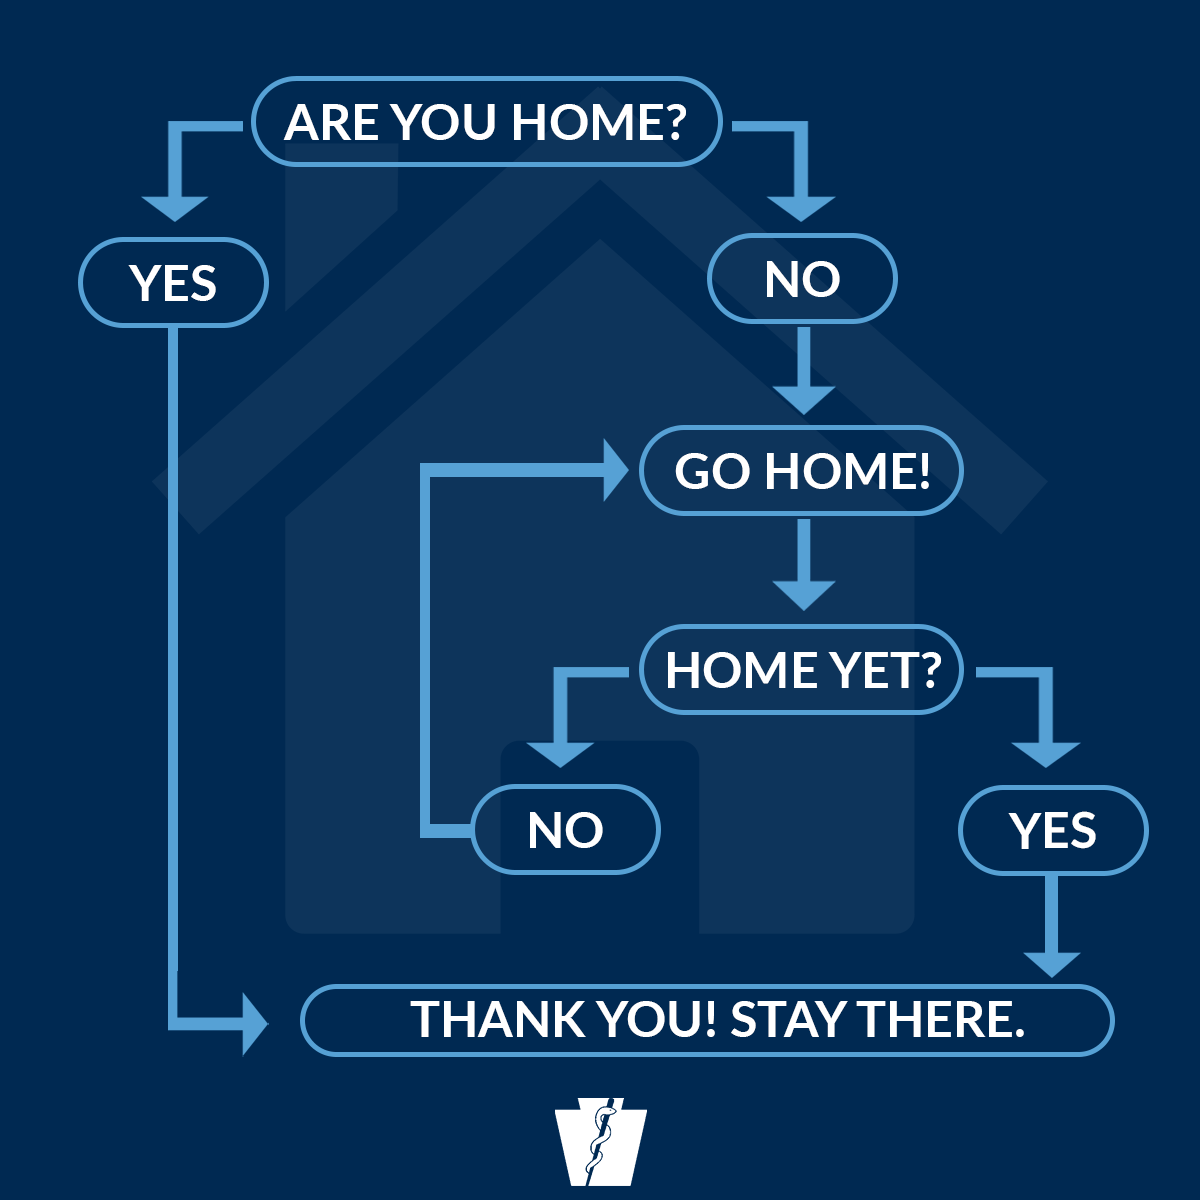 If you don't have to leave home, don't. #StayHomePA #StayCalmStayHomeStaySafe